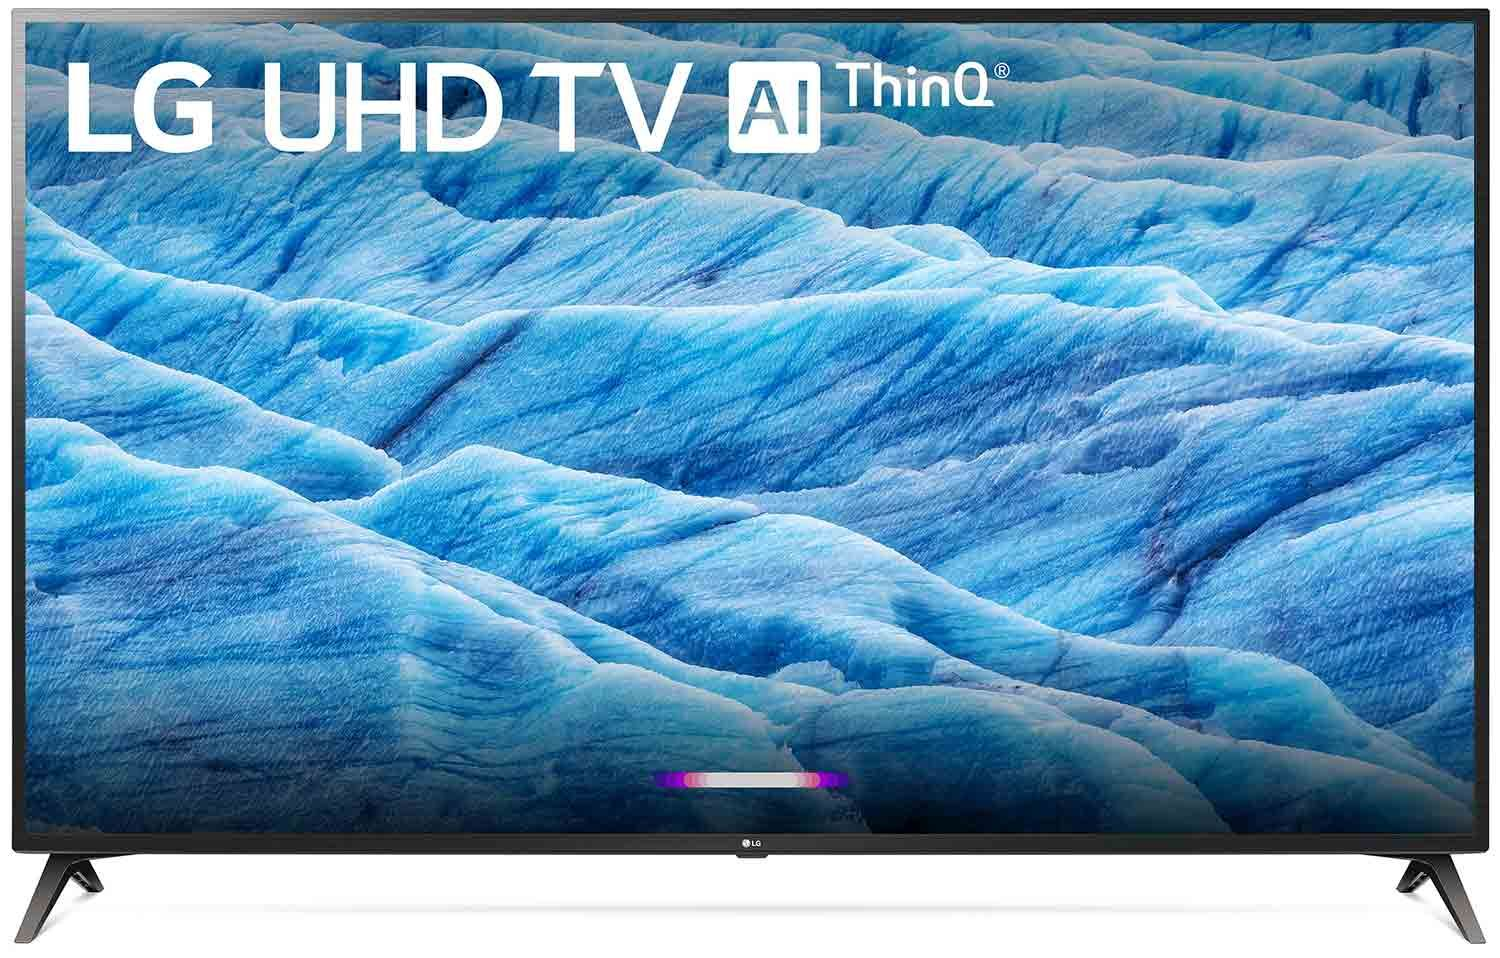 LG 70 Inch Black 4K HDR Smart LED TV With AI ThinQ